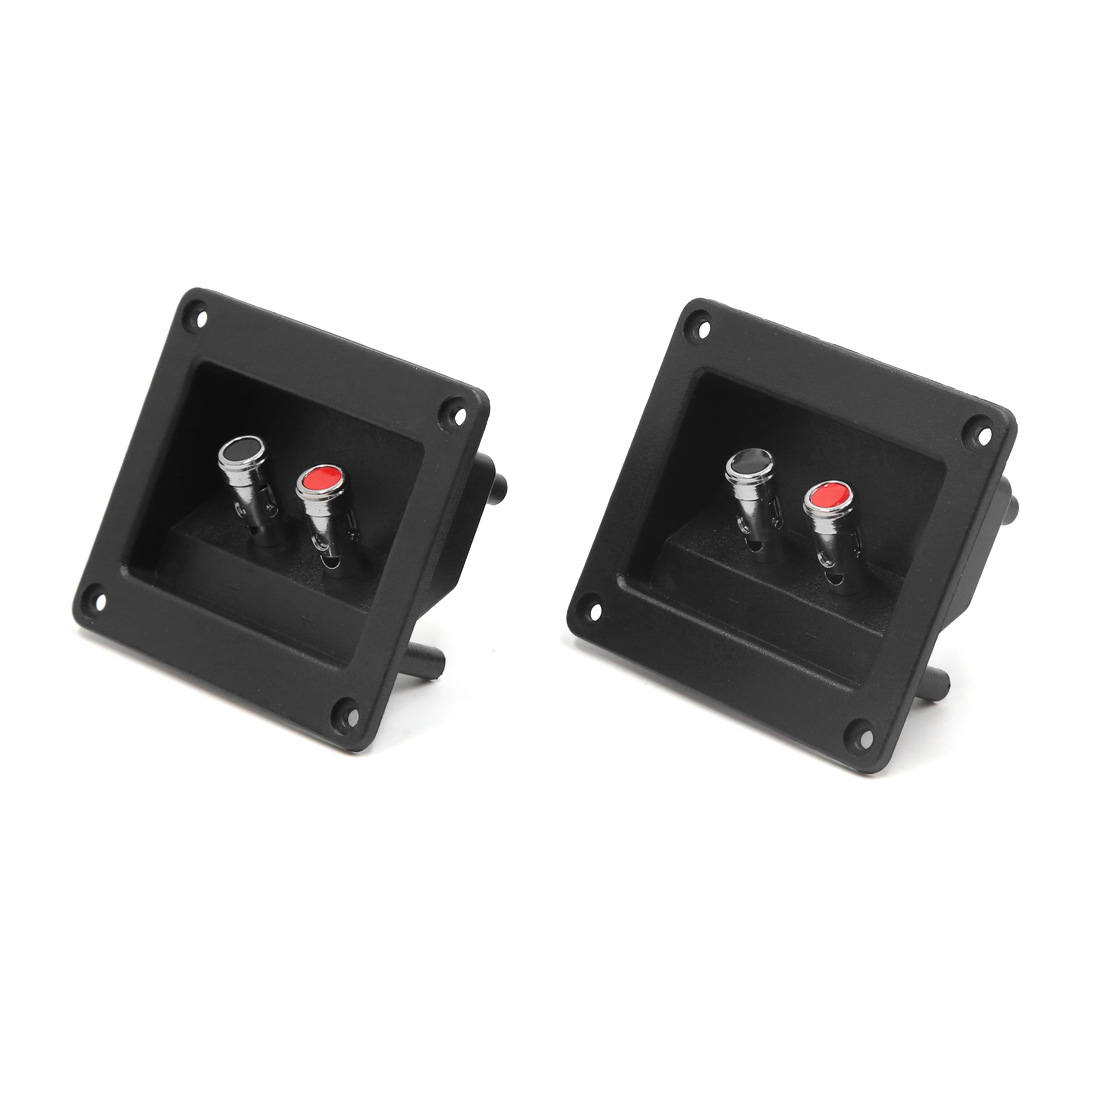 2Pcs Black Rectangle Car Audio Speaker Spring Binding Post Dual Terminal Connector Board